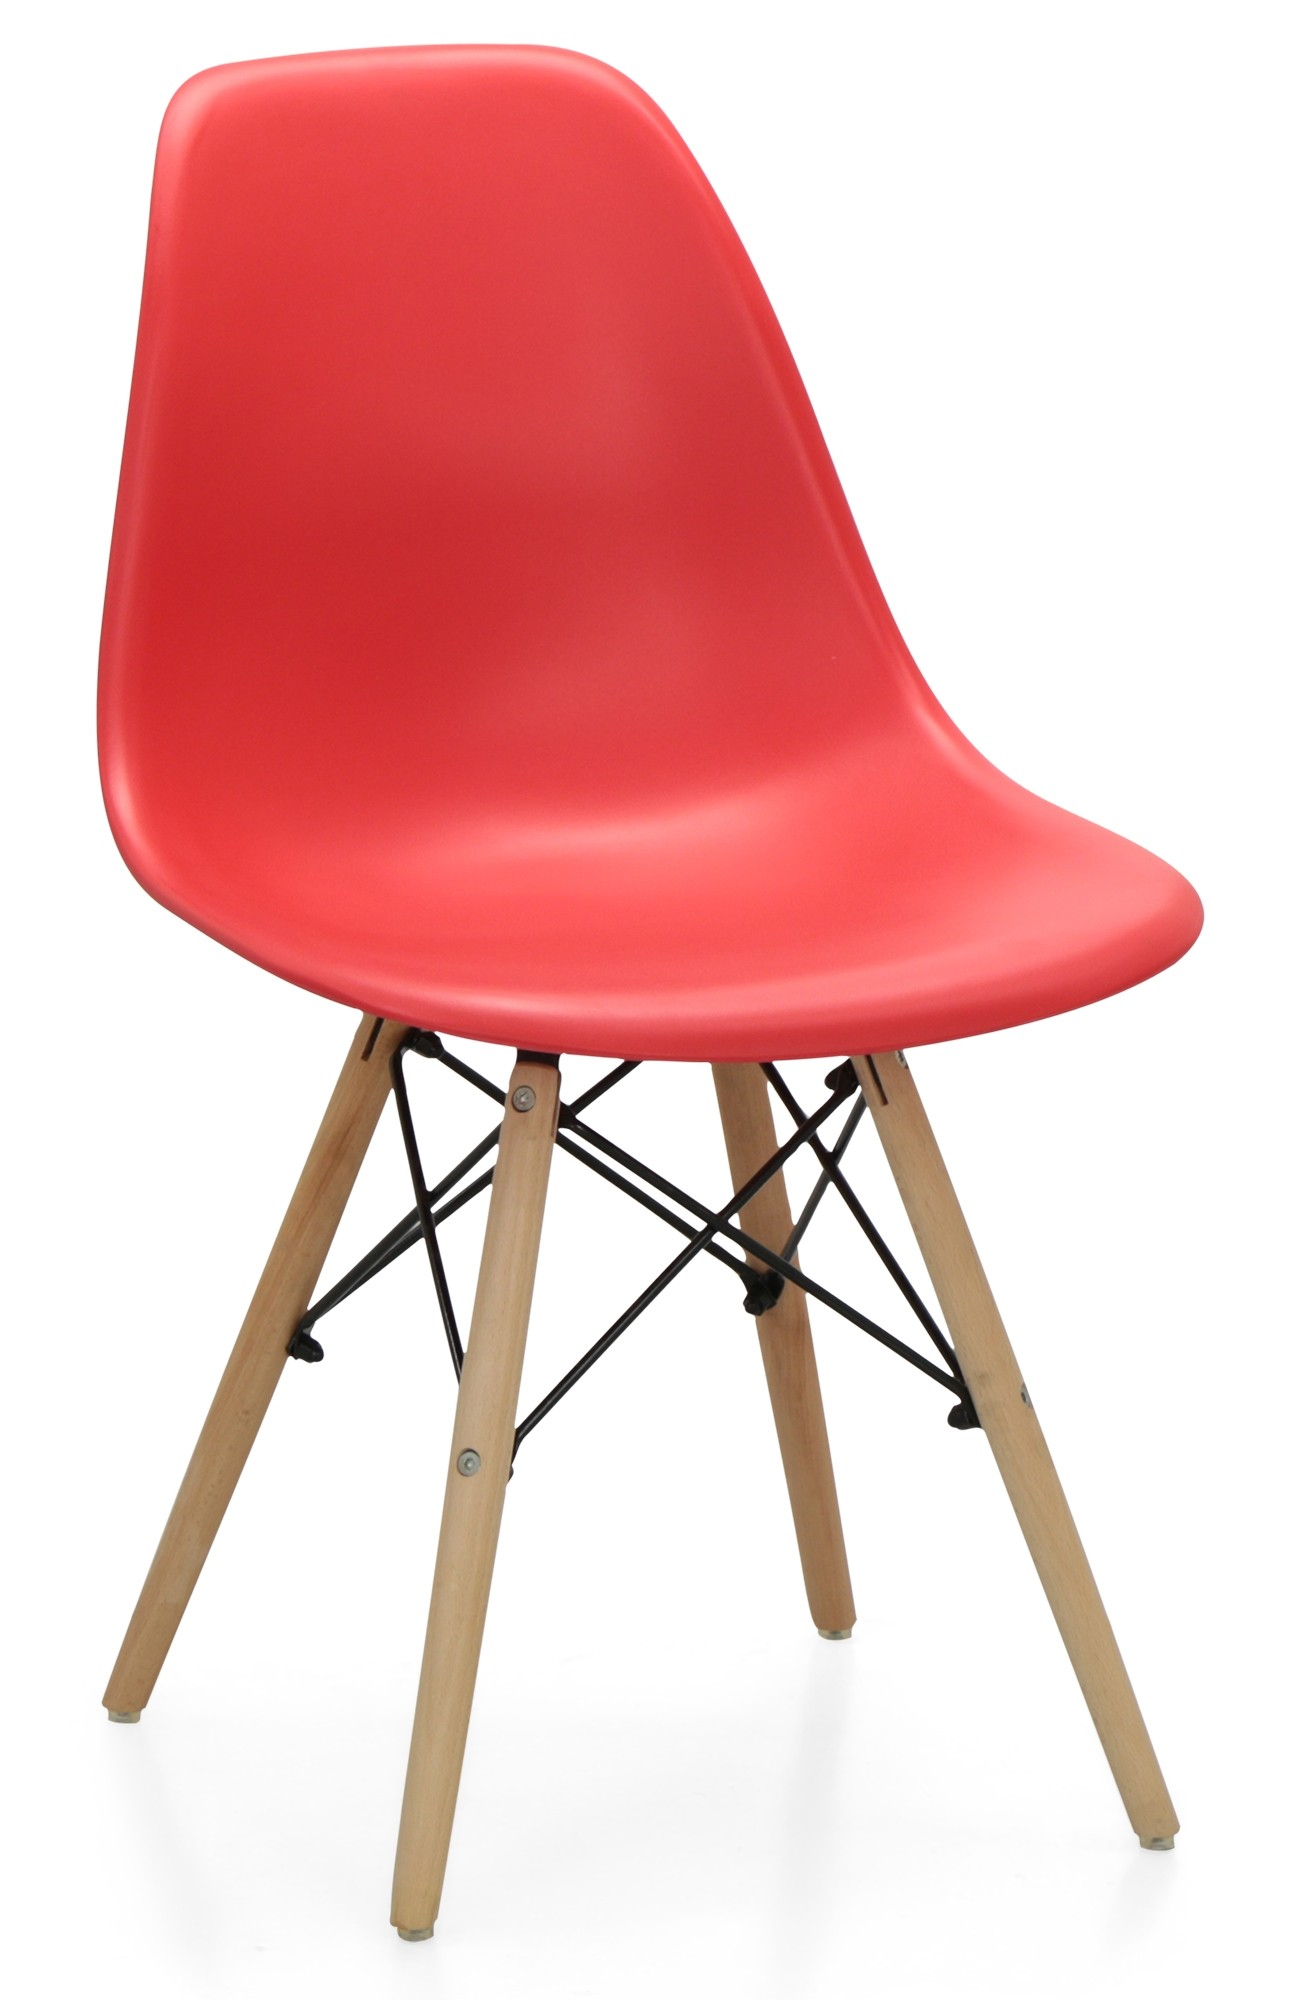 Eanes Chair Eames Red Replica Designer Chair